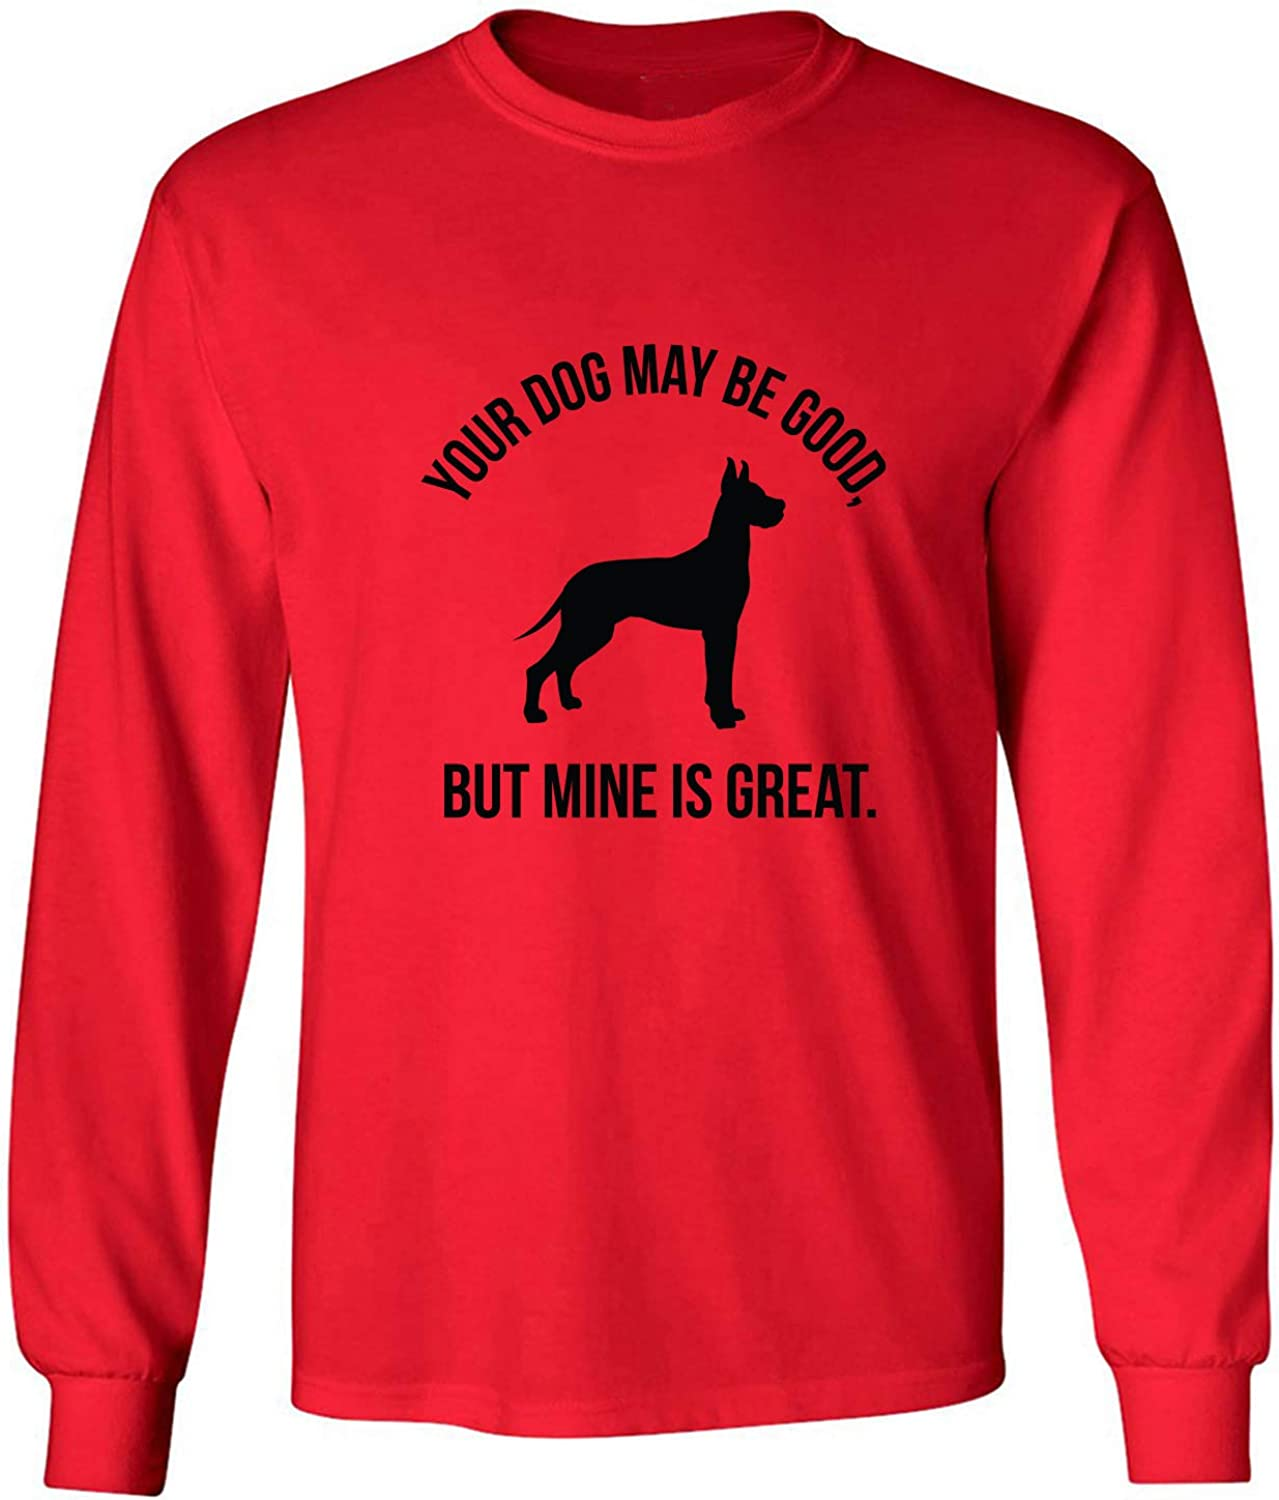 Your Dog May Be Good Adult Long Sleeve T-Shirt in Red - XXXX-Large